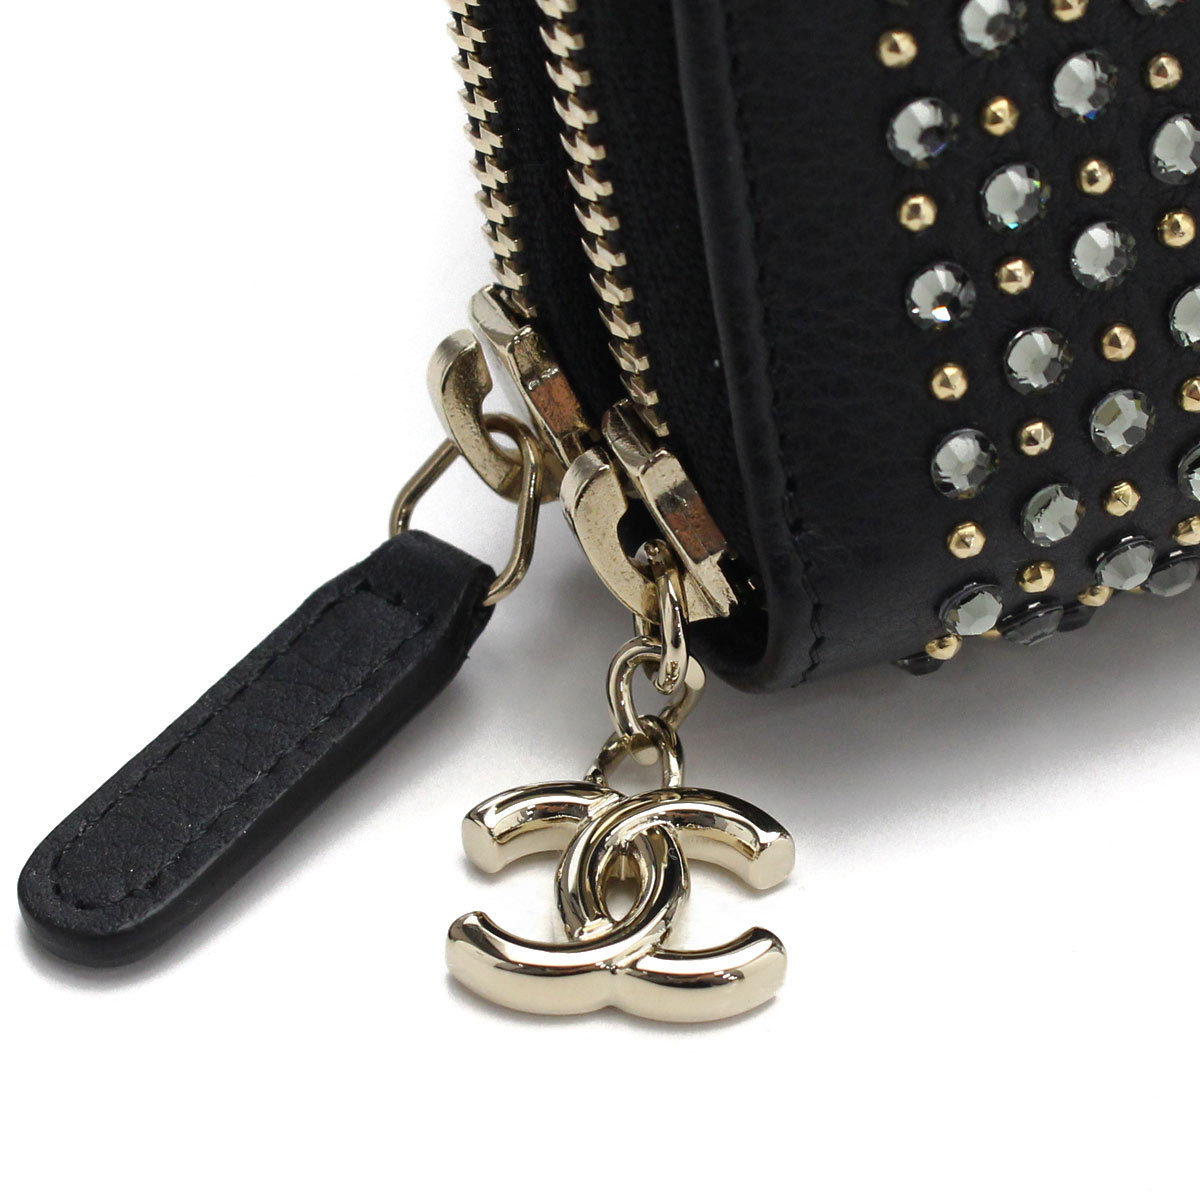 CHANEL Wファスナー コンパクトウォレット  A81006 【即発】